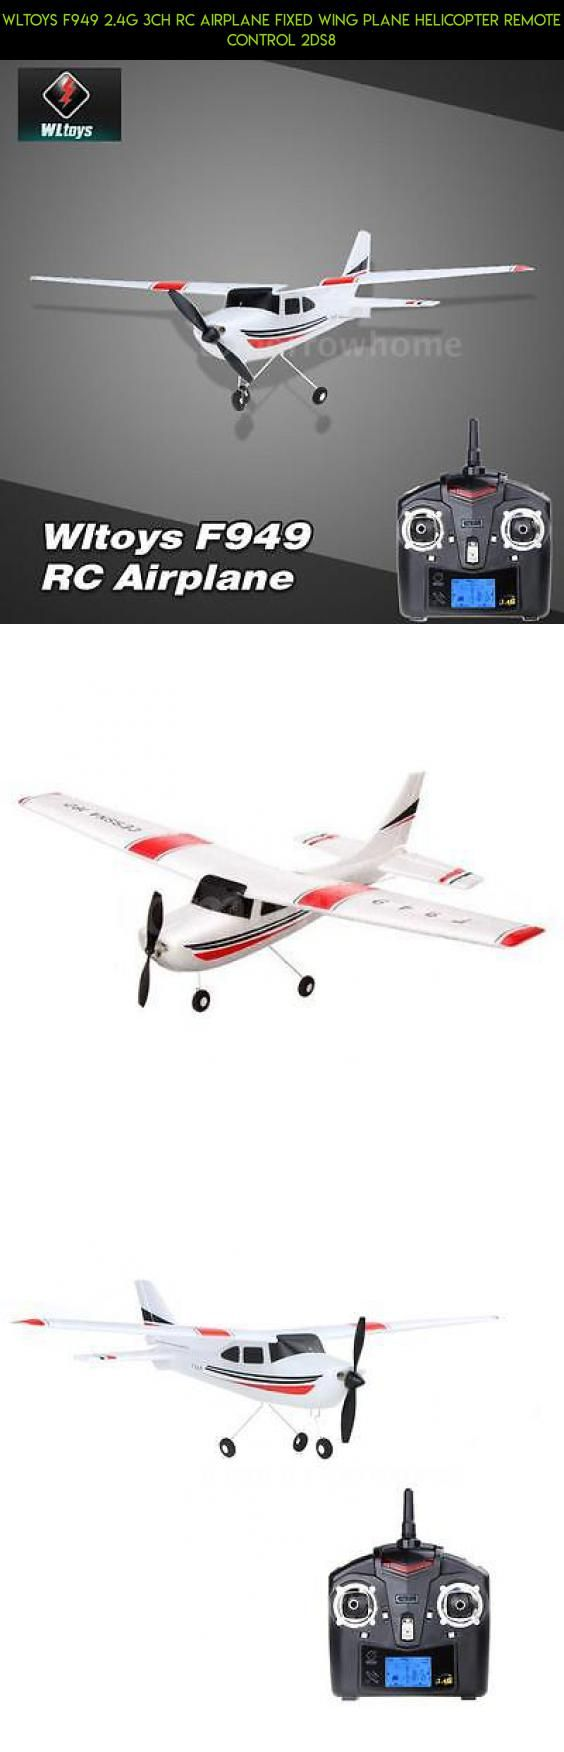 Wltoys F949 2.4G 3Ch RC Airplane Fixed Wing Plane Helicopter Remote Control 2DS8 #kit #racing #plans #gadgets #tech #products #parts #wltoys #shopping #3ch #camera #fpv #drone #technology